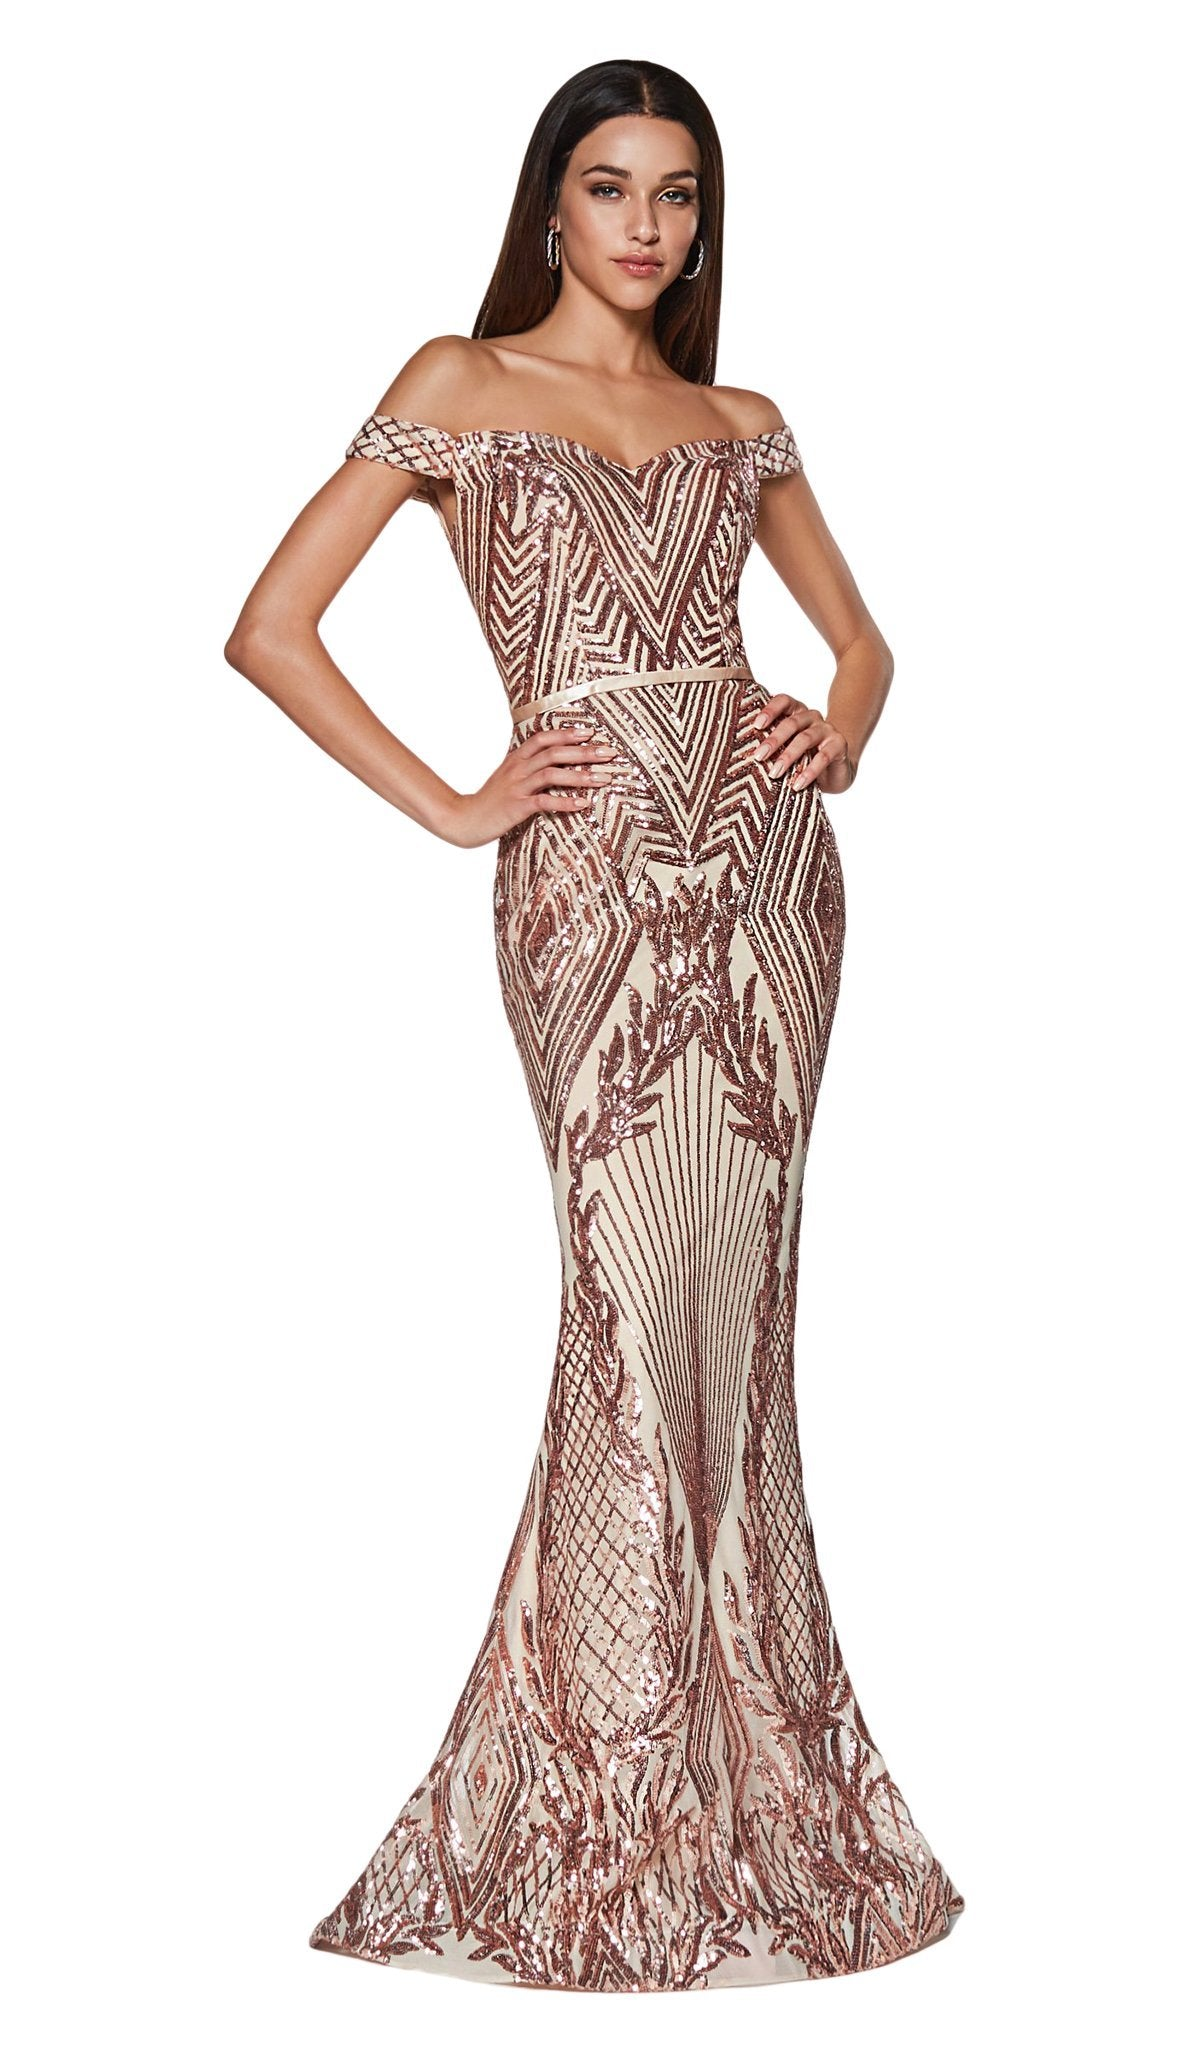 Cinderella Divine - CB0039 Sparkly Sequin Off-Shoulder Evening Gown In Pink and Gold